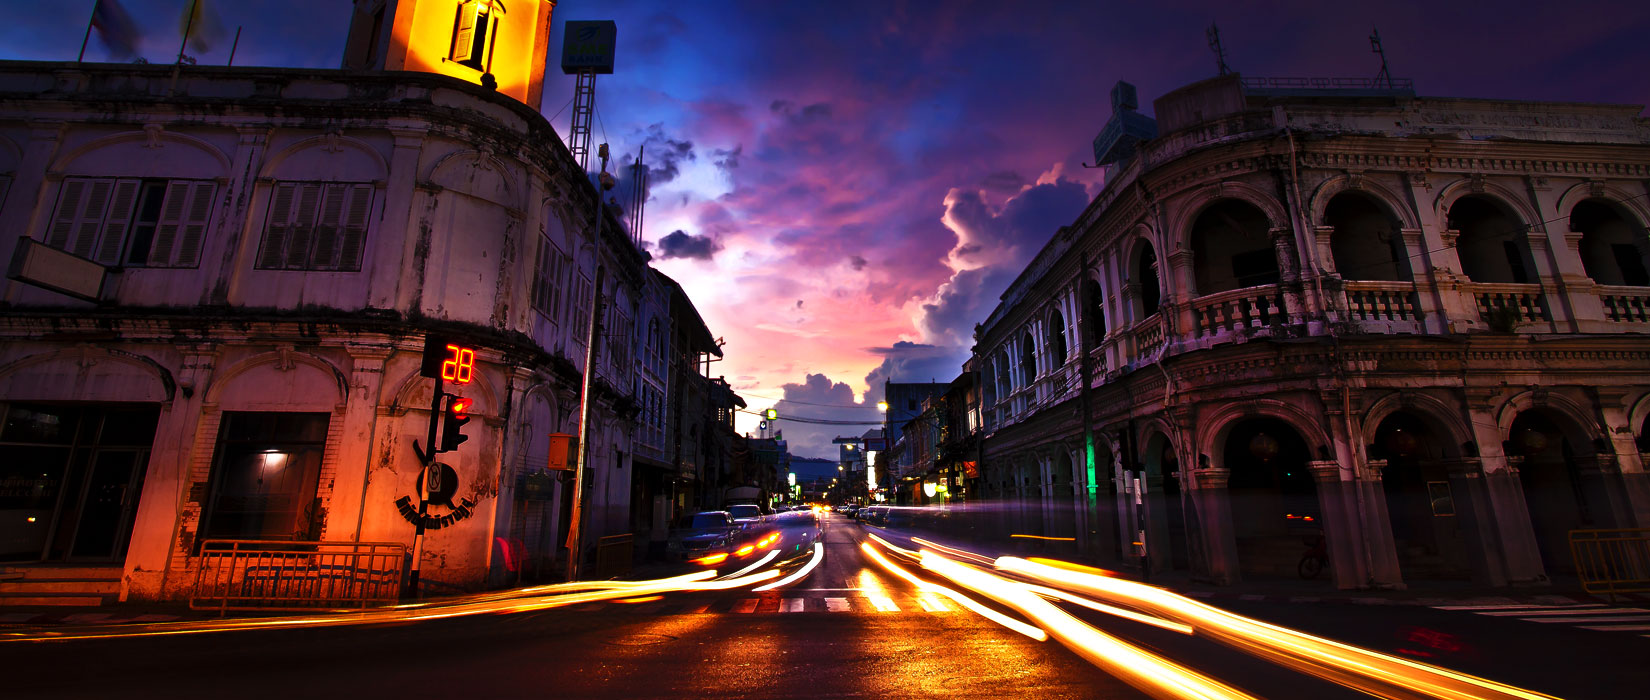 EXPERIENCE THE CULTURAL HIGHLIGHTS OF OLD TOWN PHUKET